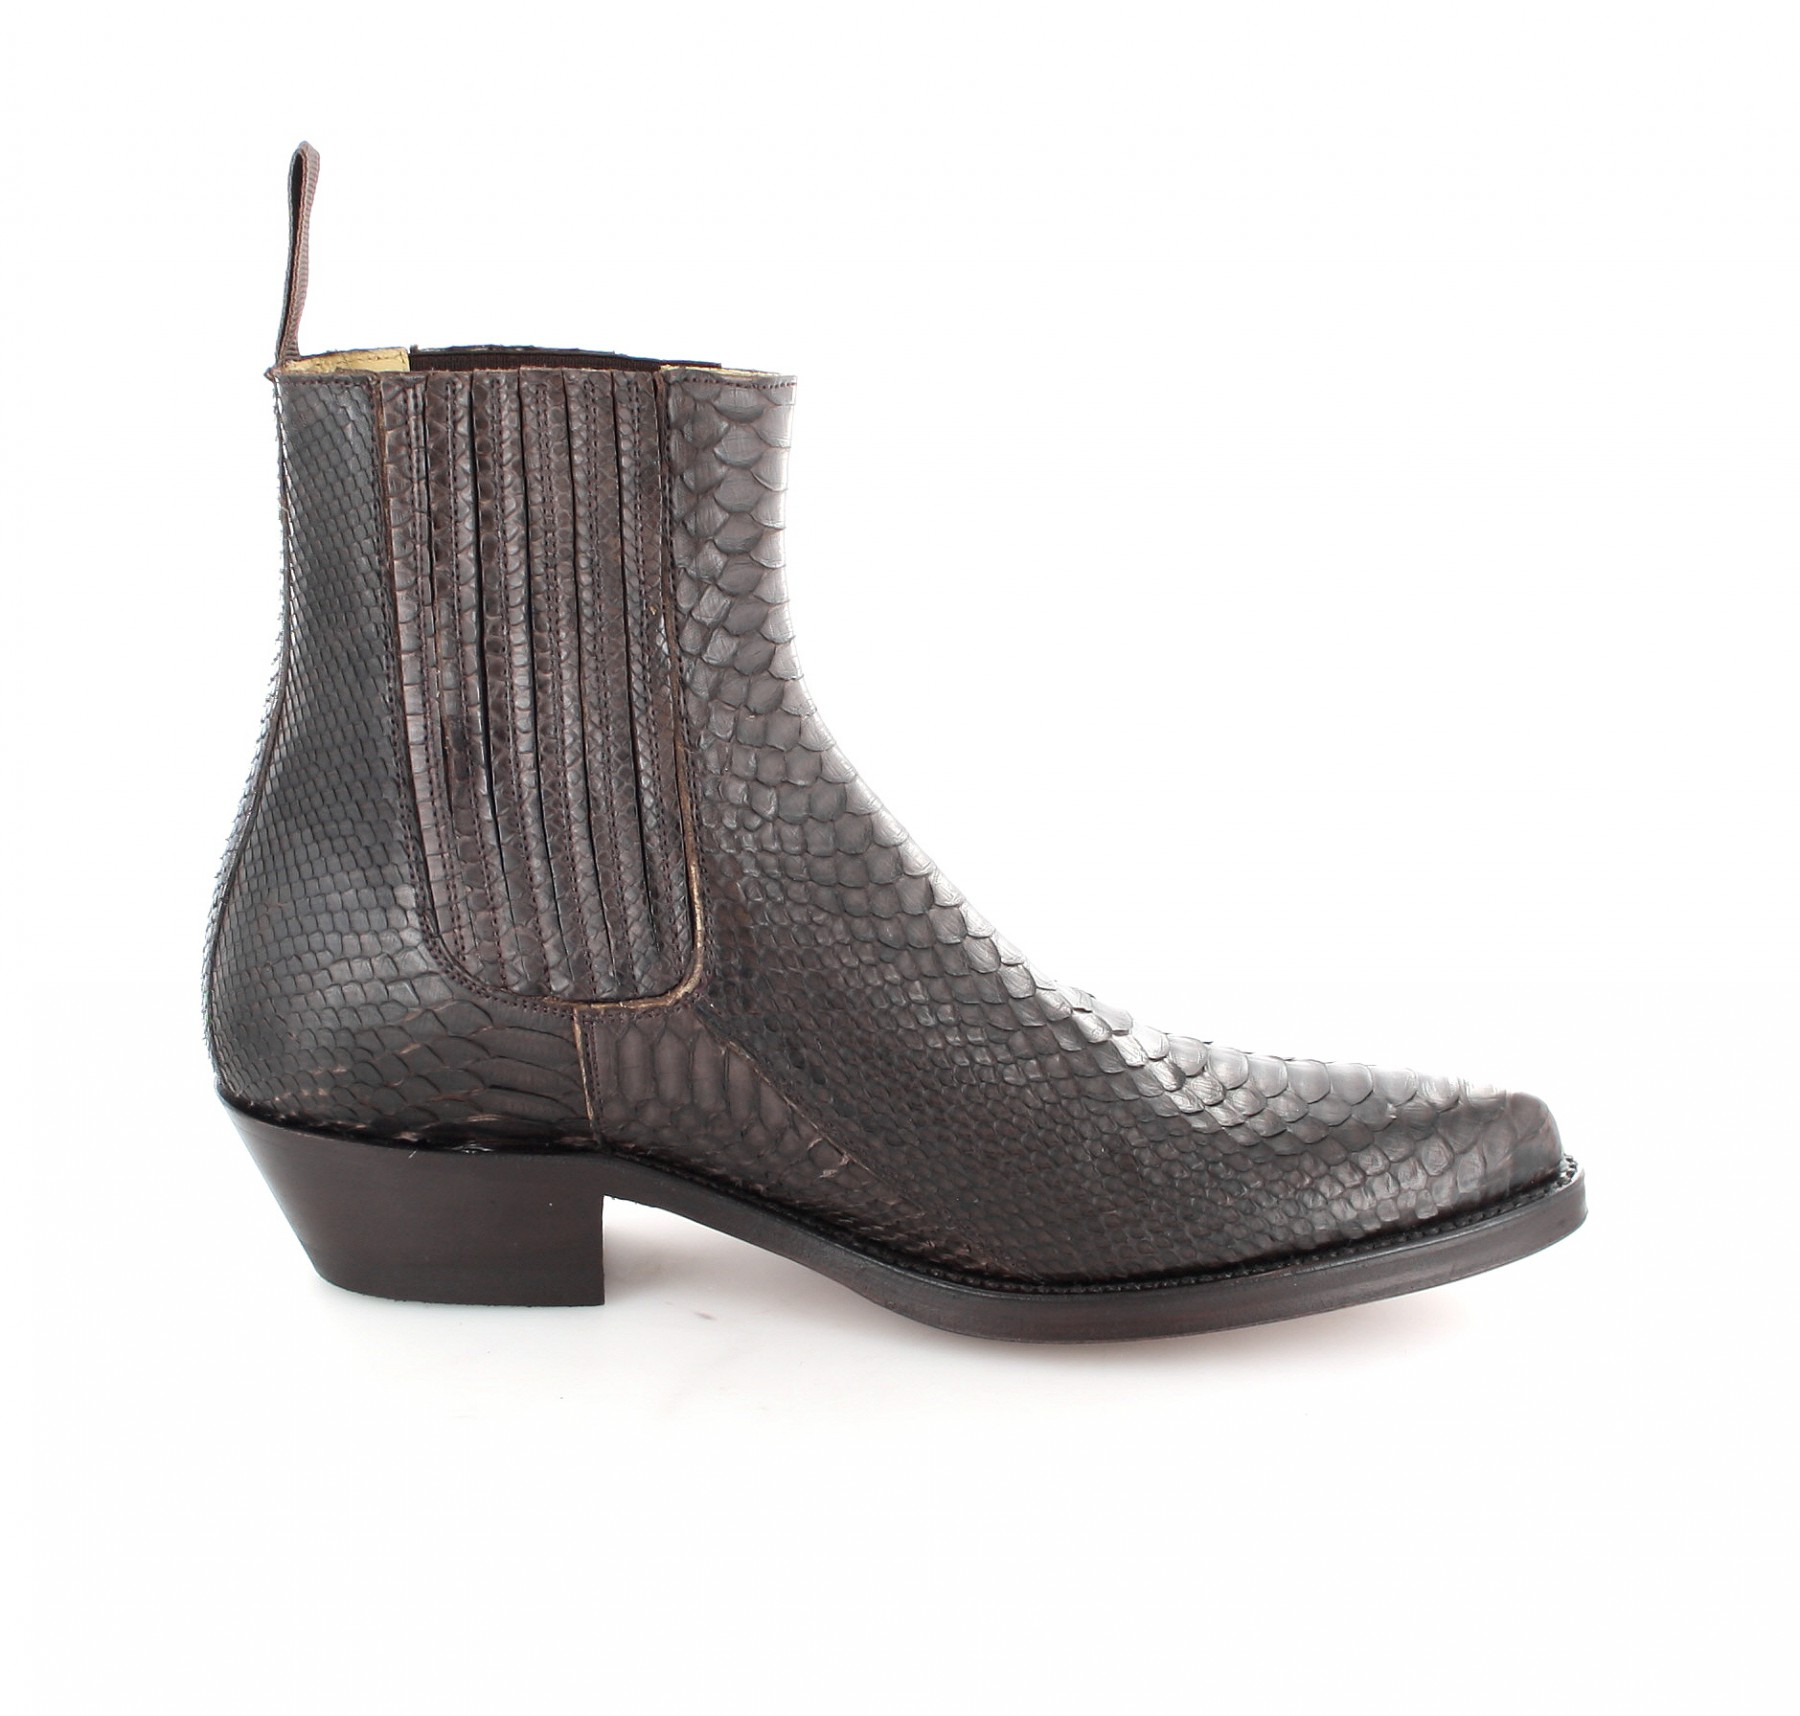 tony mora 621 python marron exotic western ankle boot - dark brown